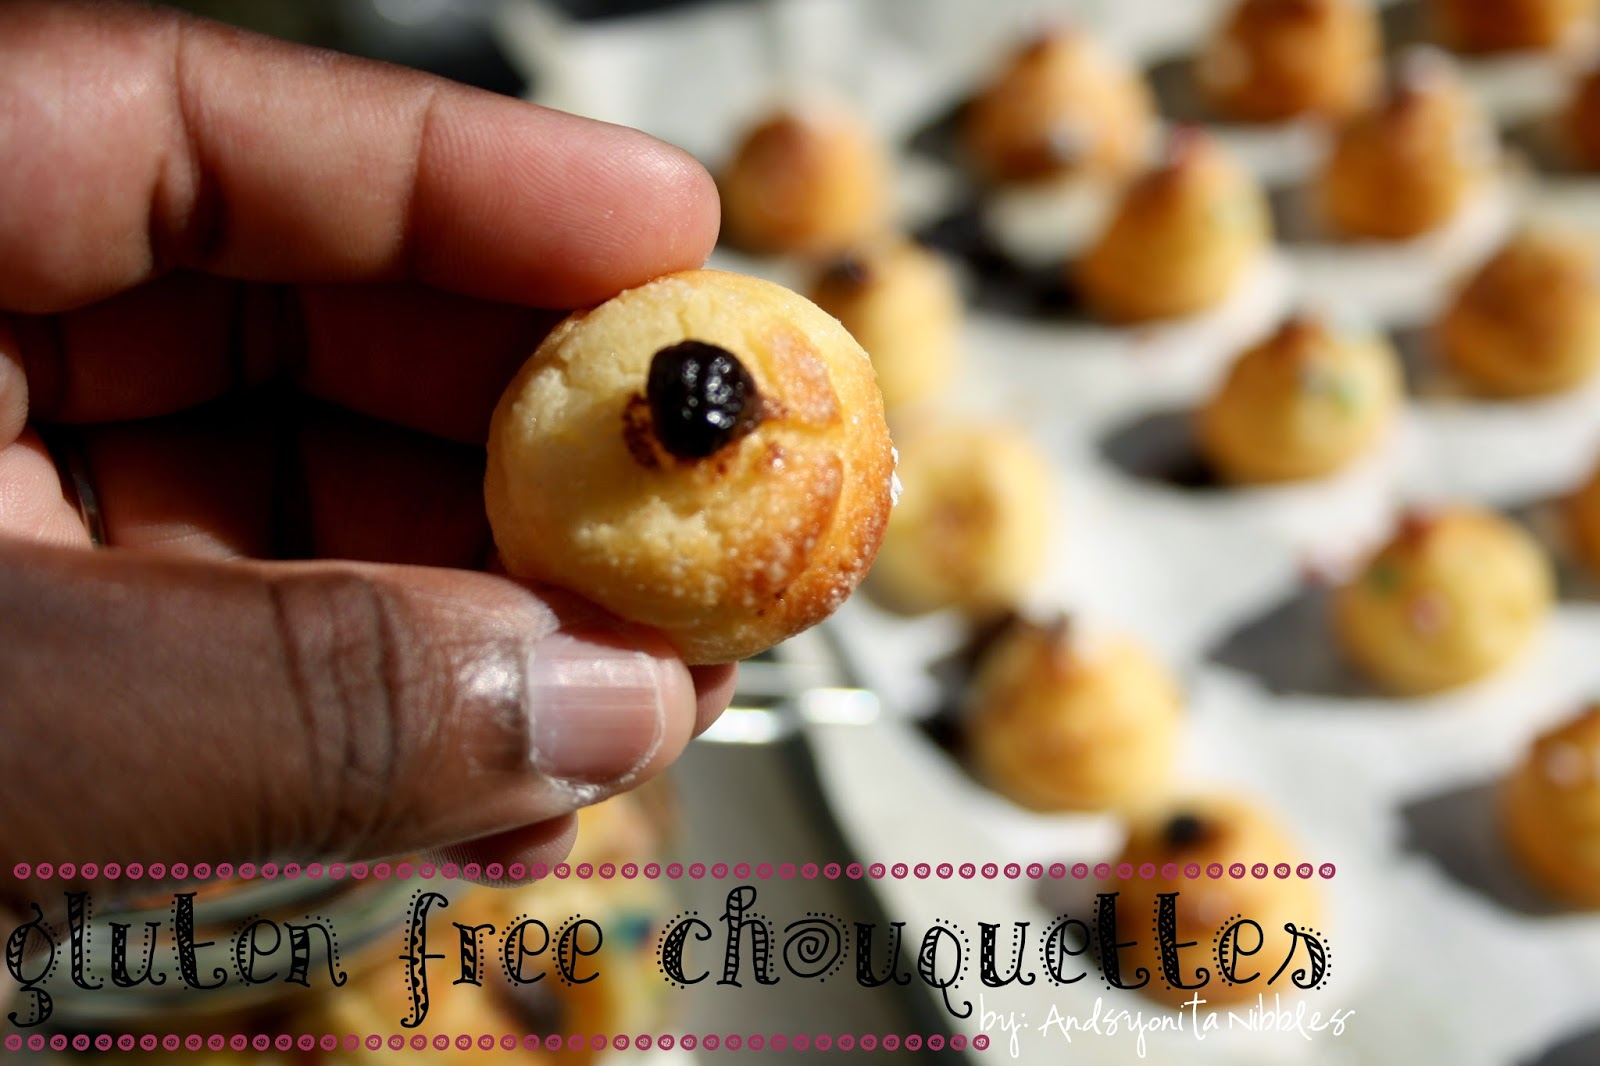 A chouquettte with chocolate chips from Anyontia Nibbles